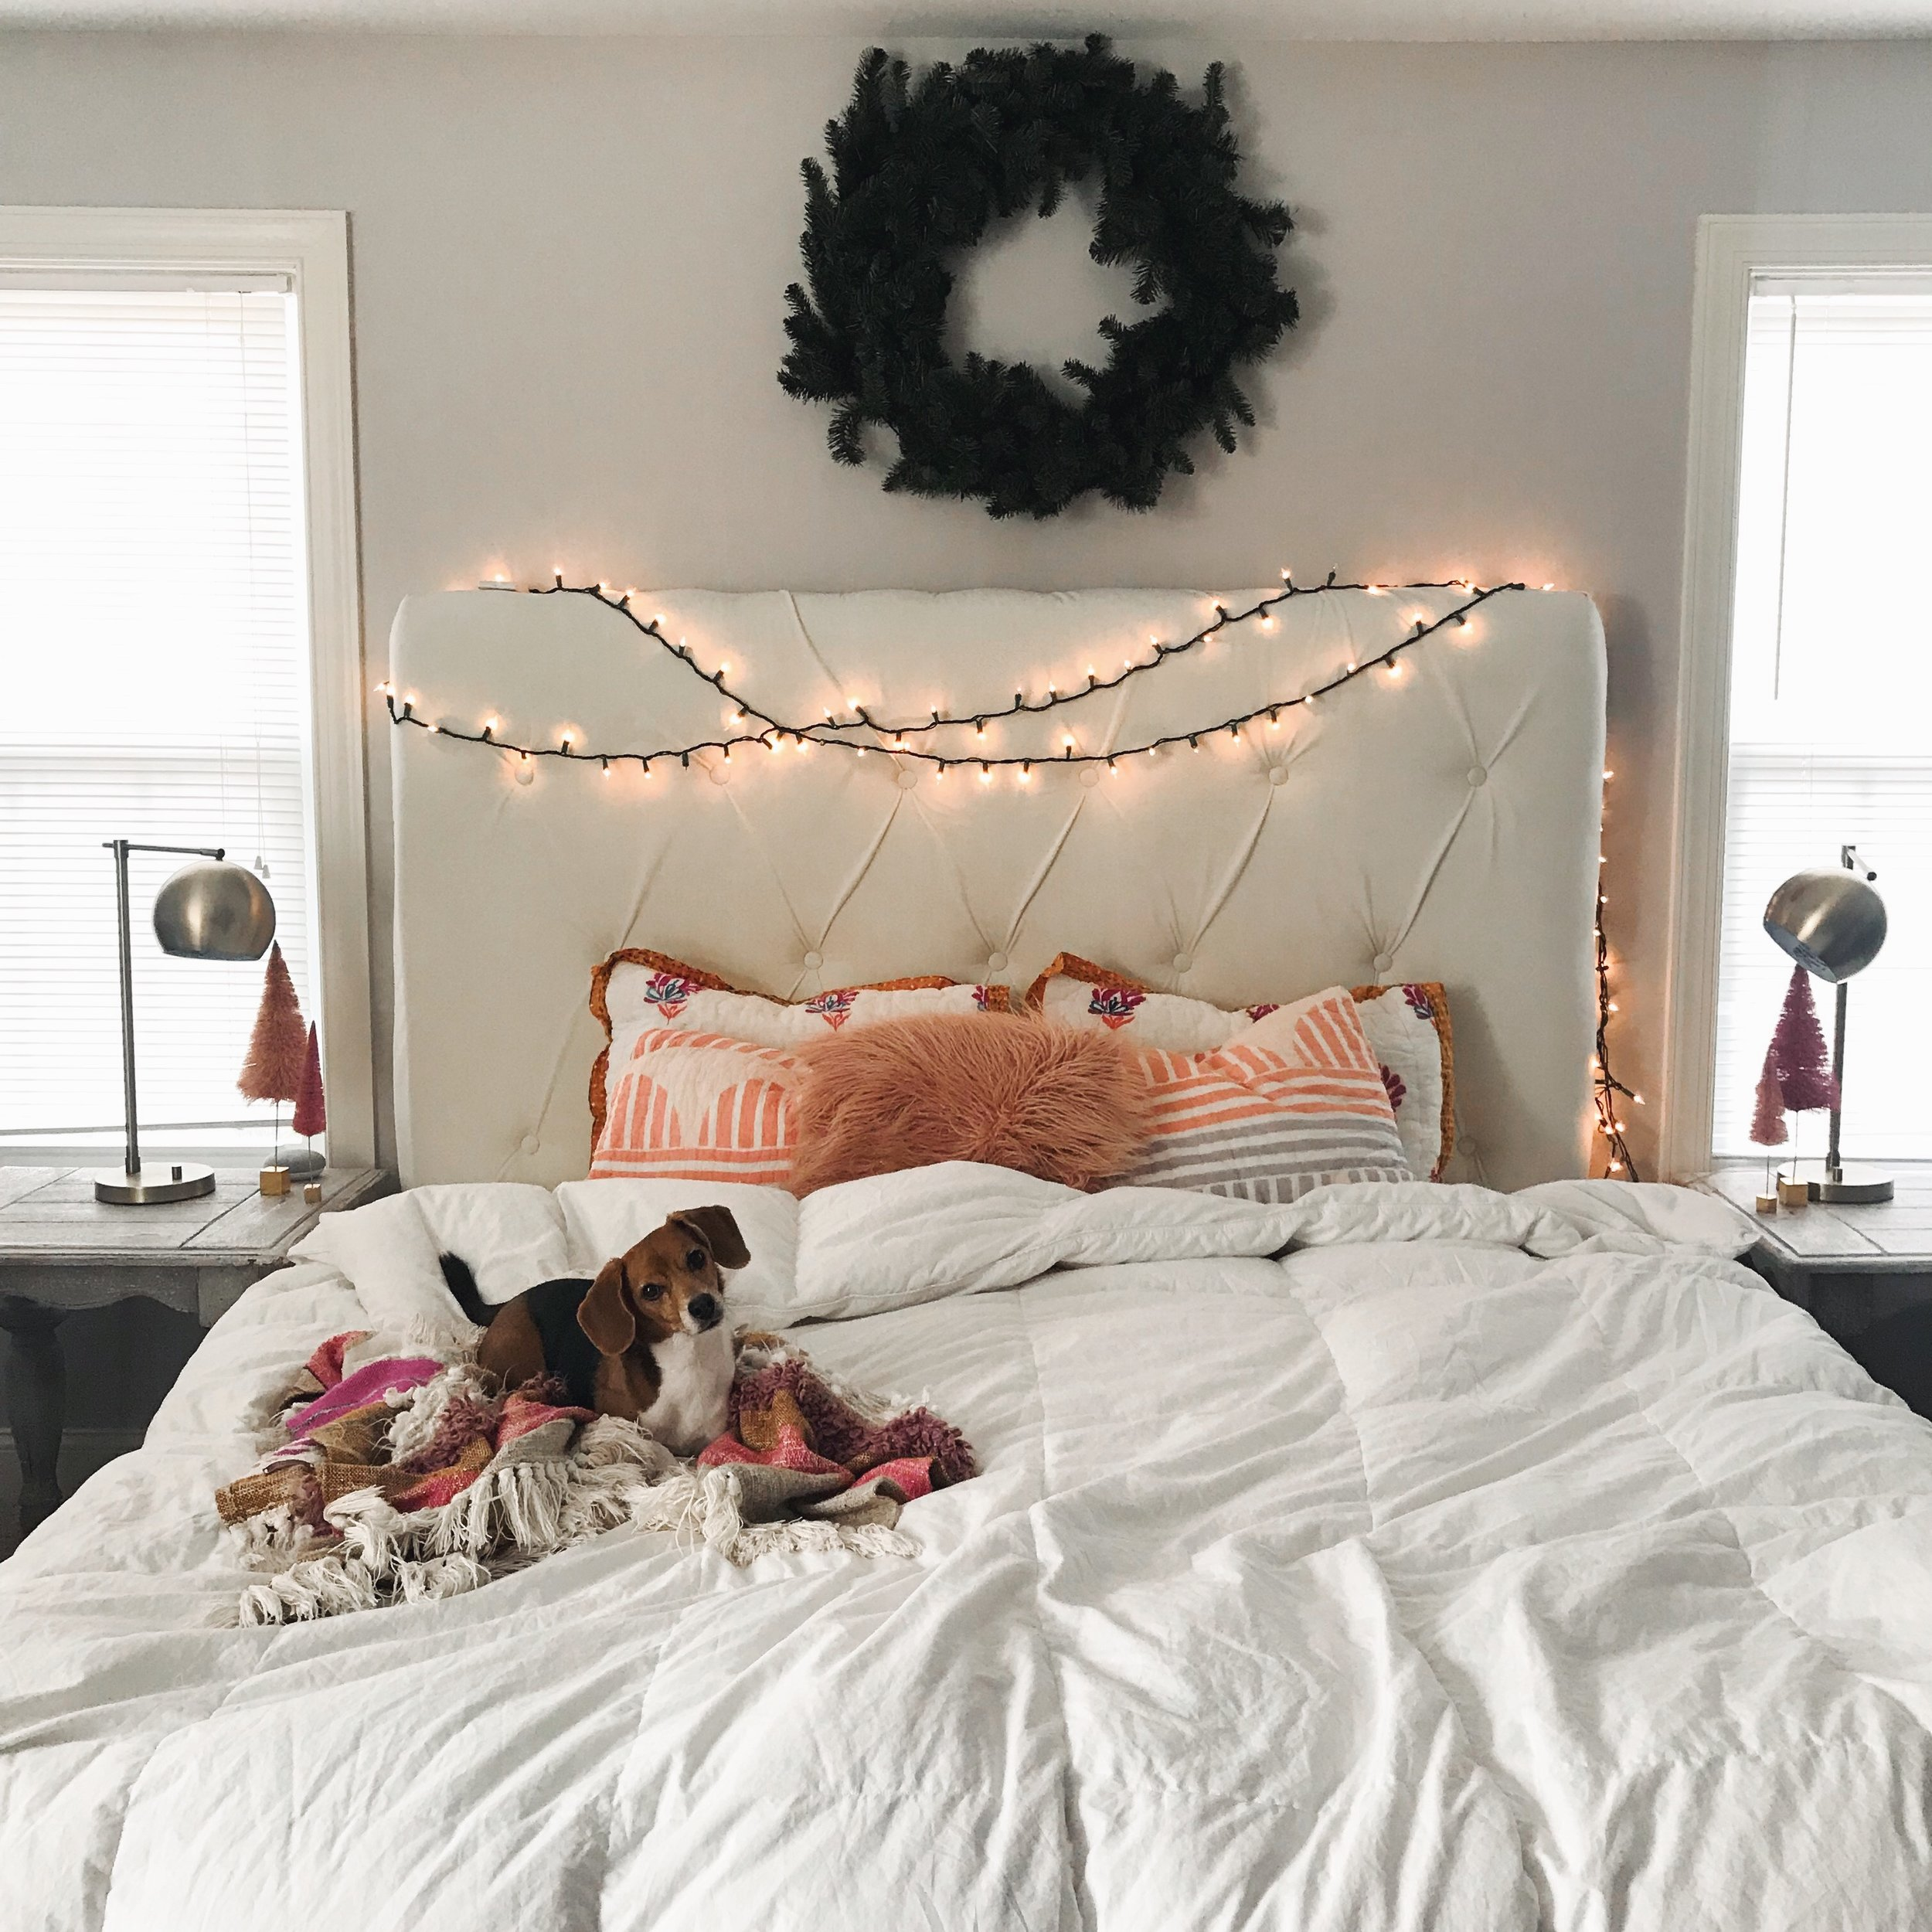 And there ya have it. A look around our home. This is our bedroom and just adding a simple wreath and twinkle lights completely transformed this area into my dreamland.  Night night!